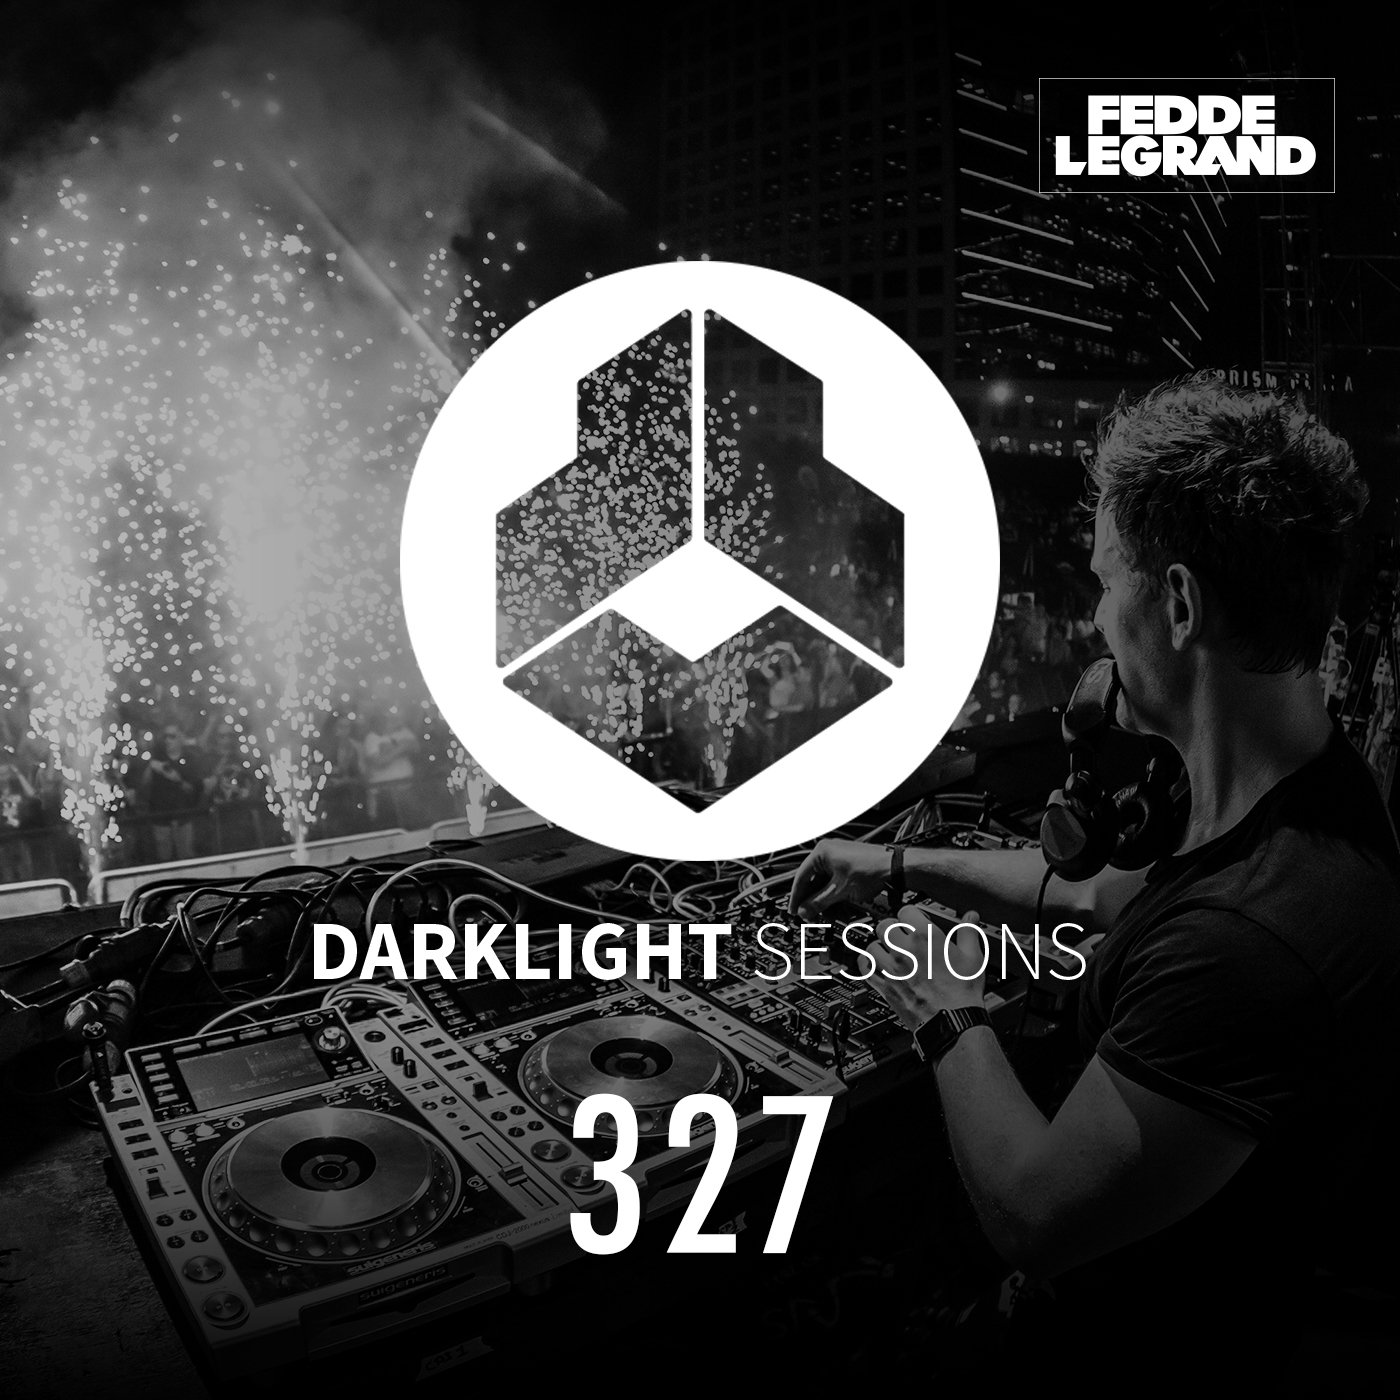 Darklight Sessions 327